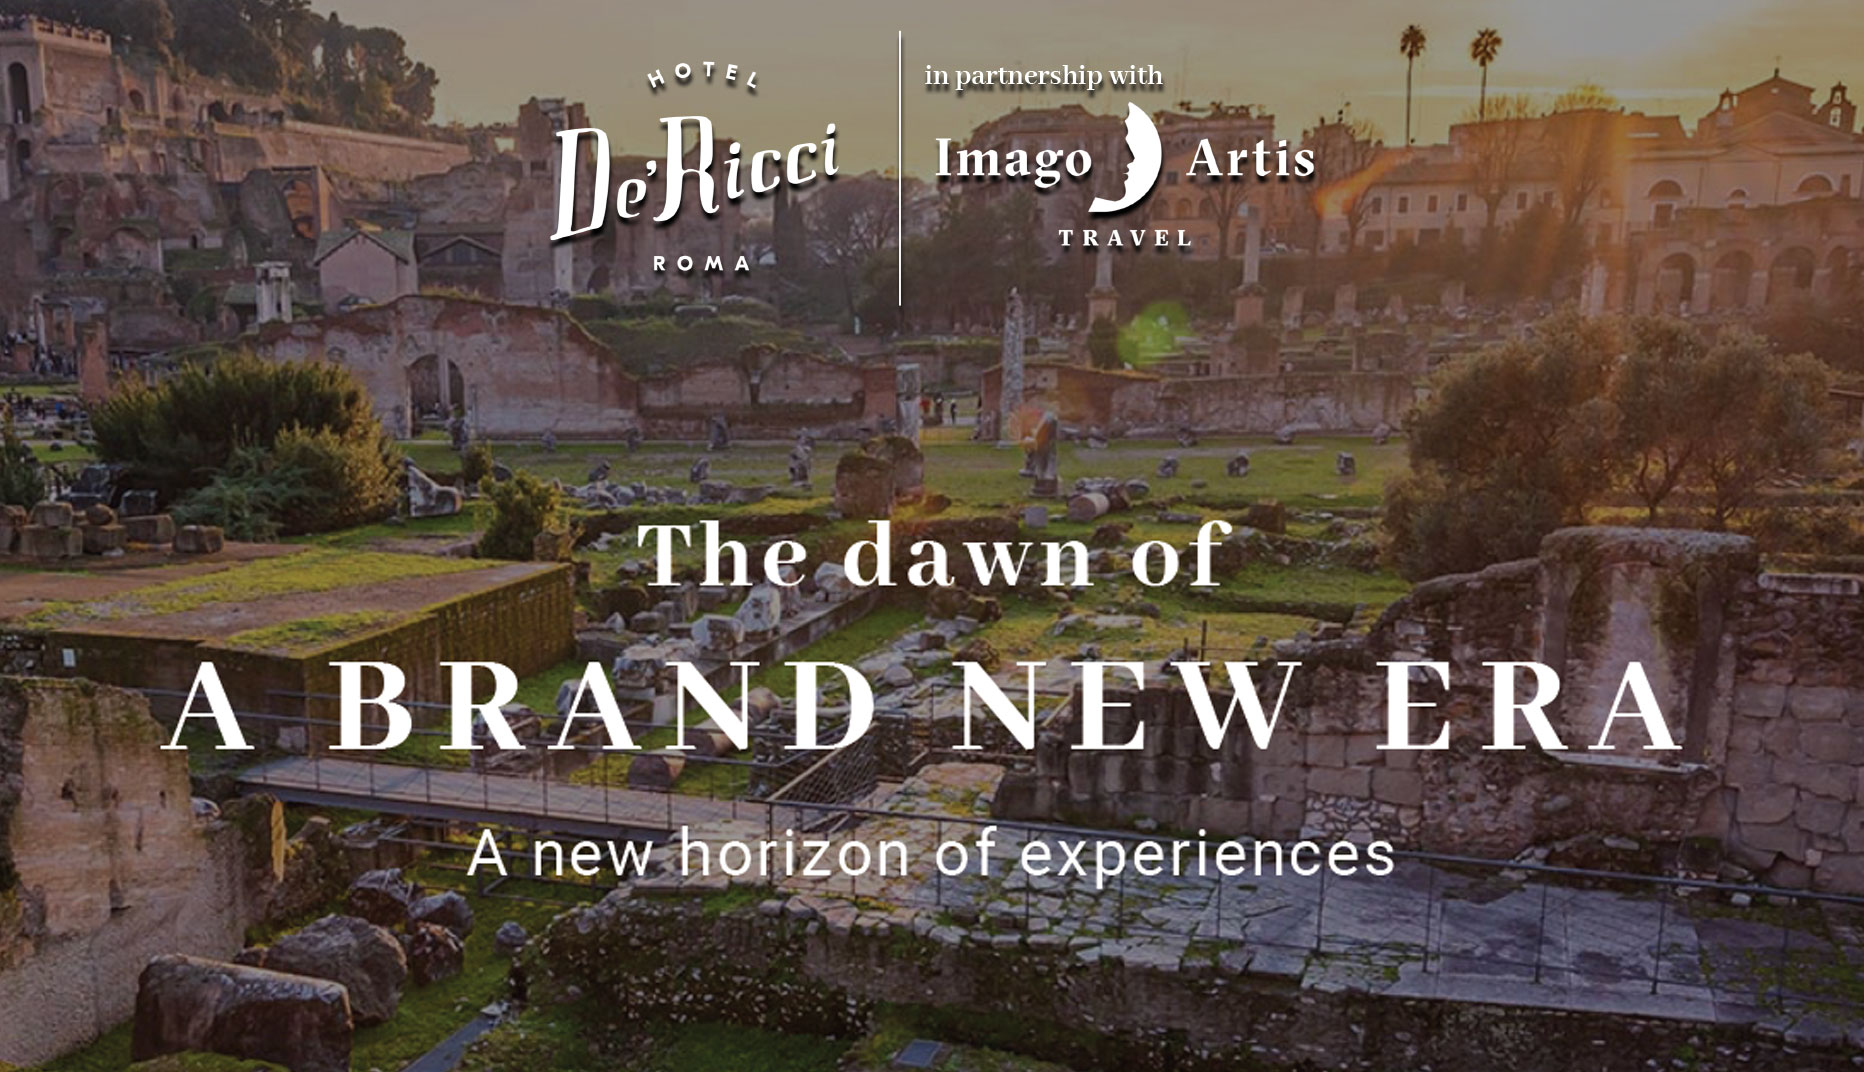 The dawn of A BRAND NEW ERA A new horizon of experiences